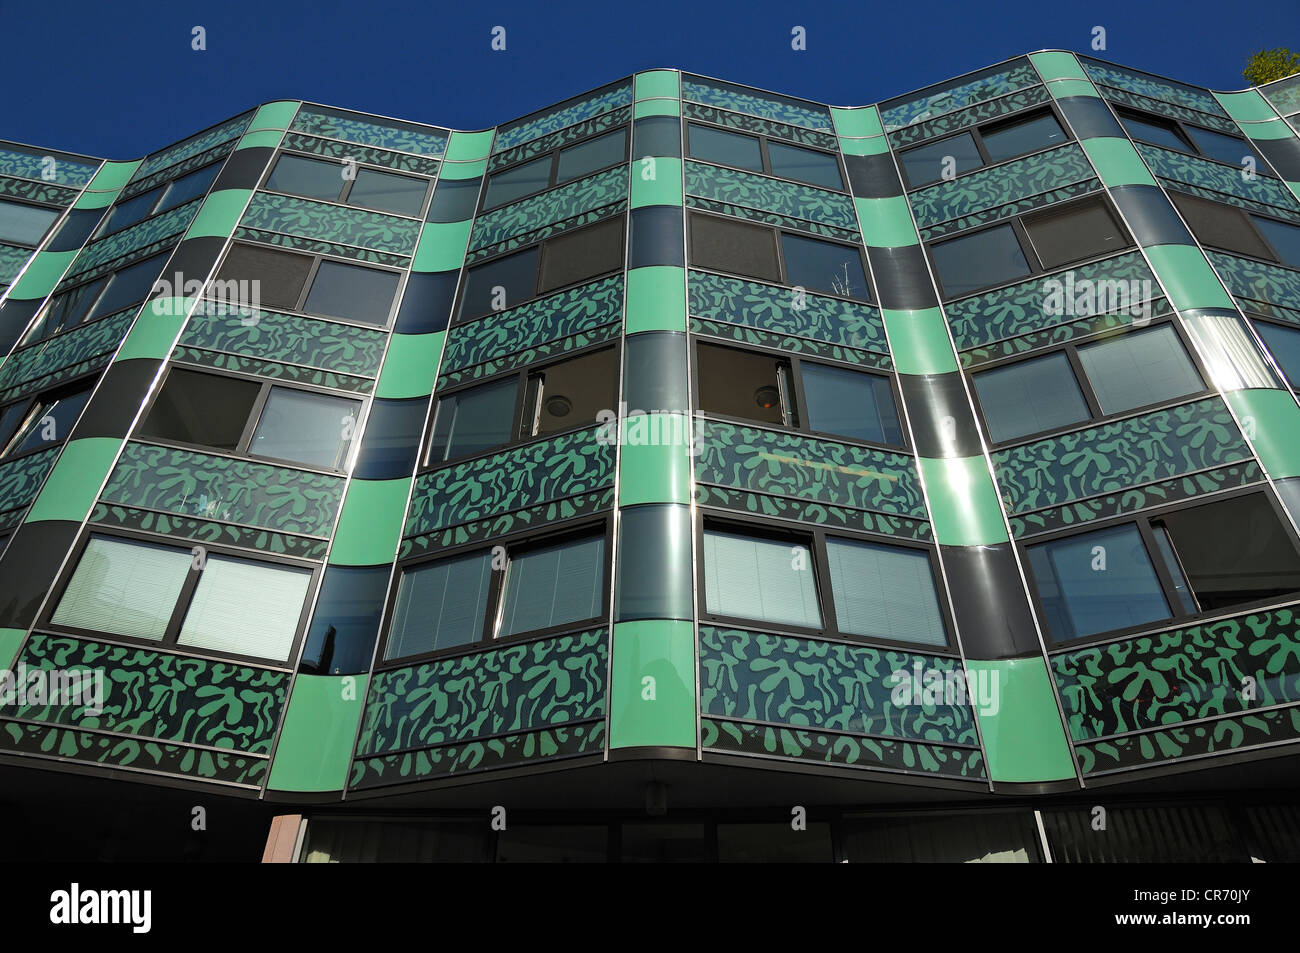 Vienne Autriche Office Du Tourisme Vienna Modern Office Photos Vienna Modern Office Images Alamy